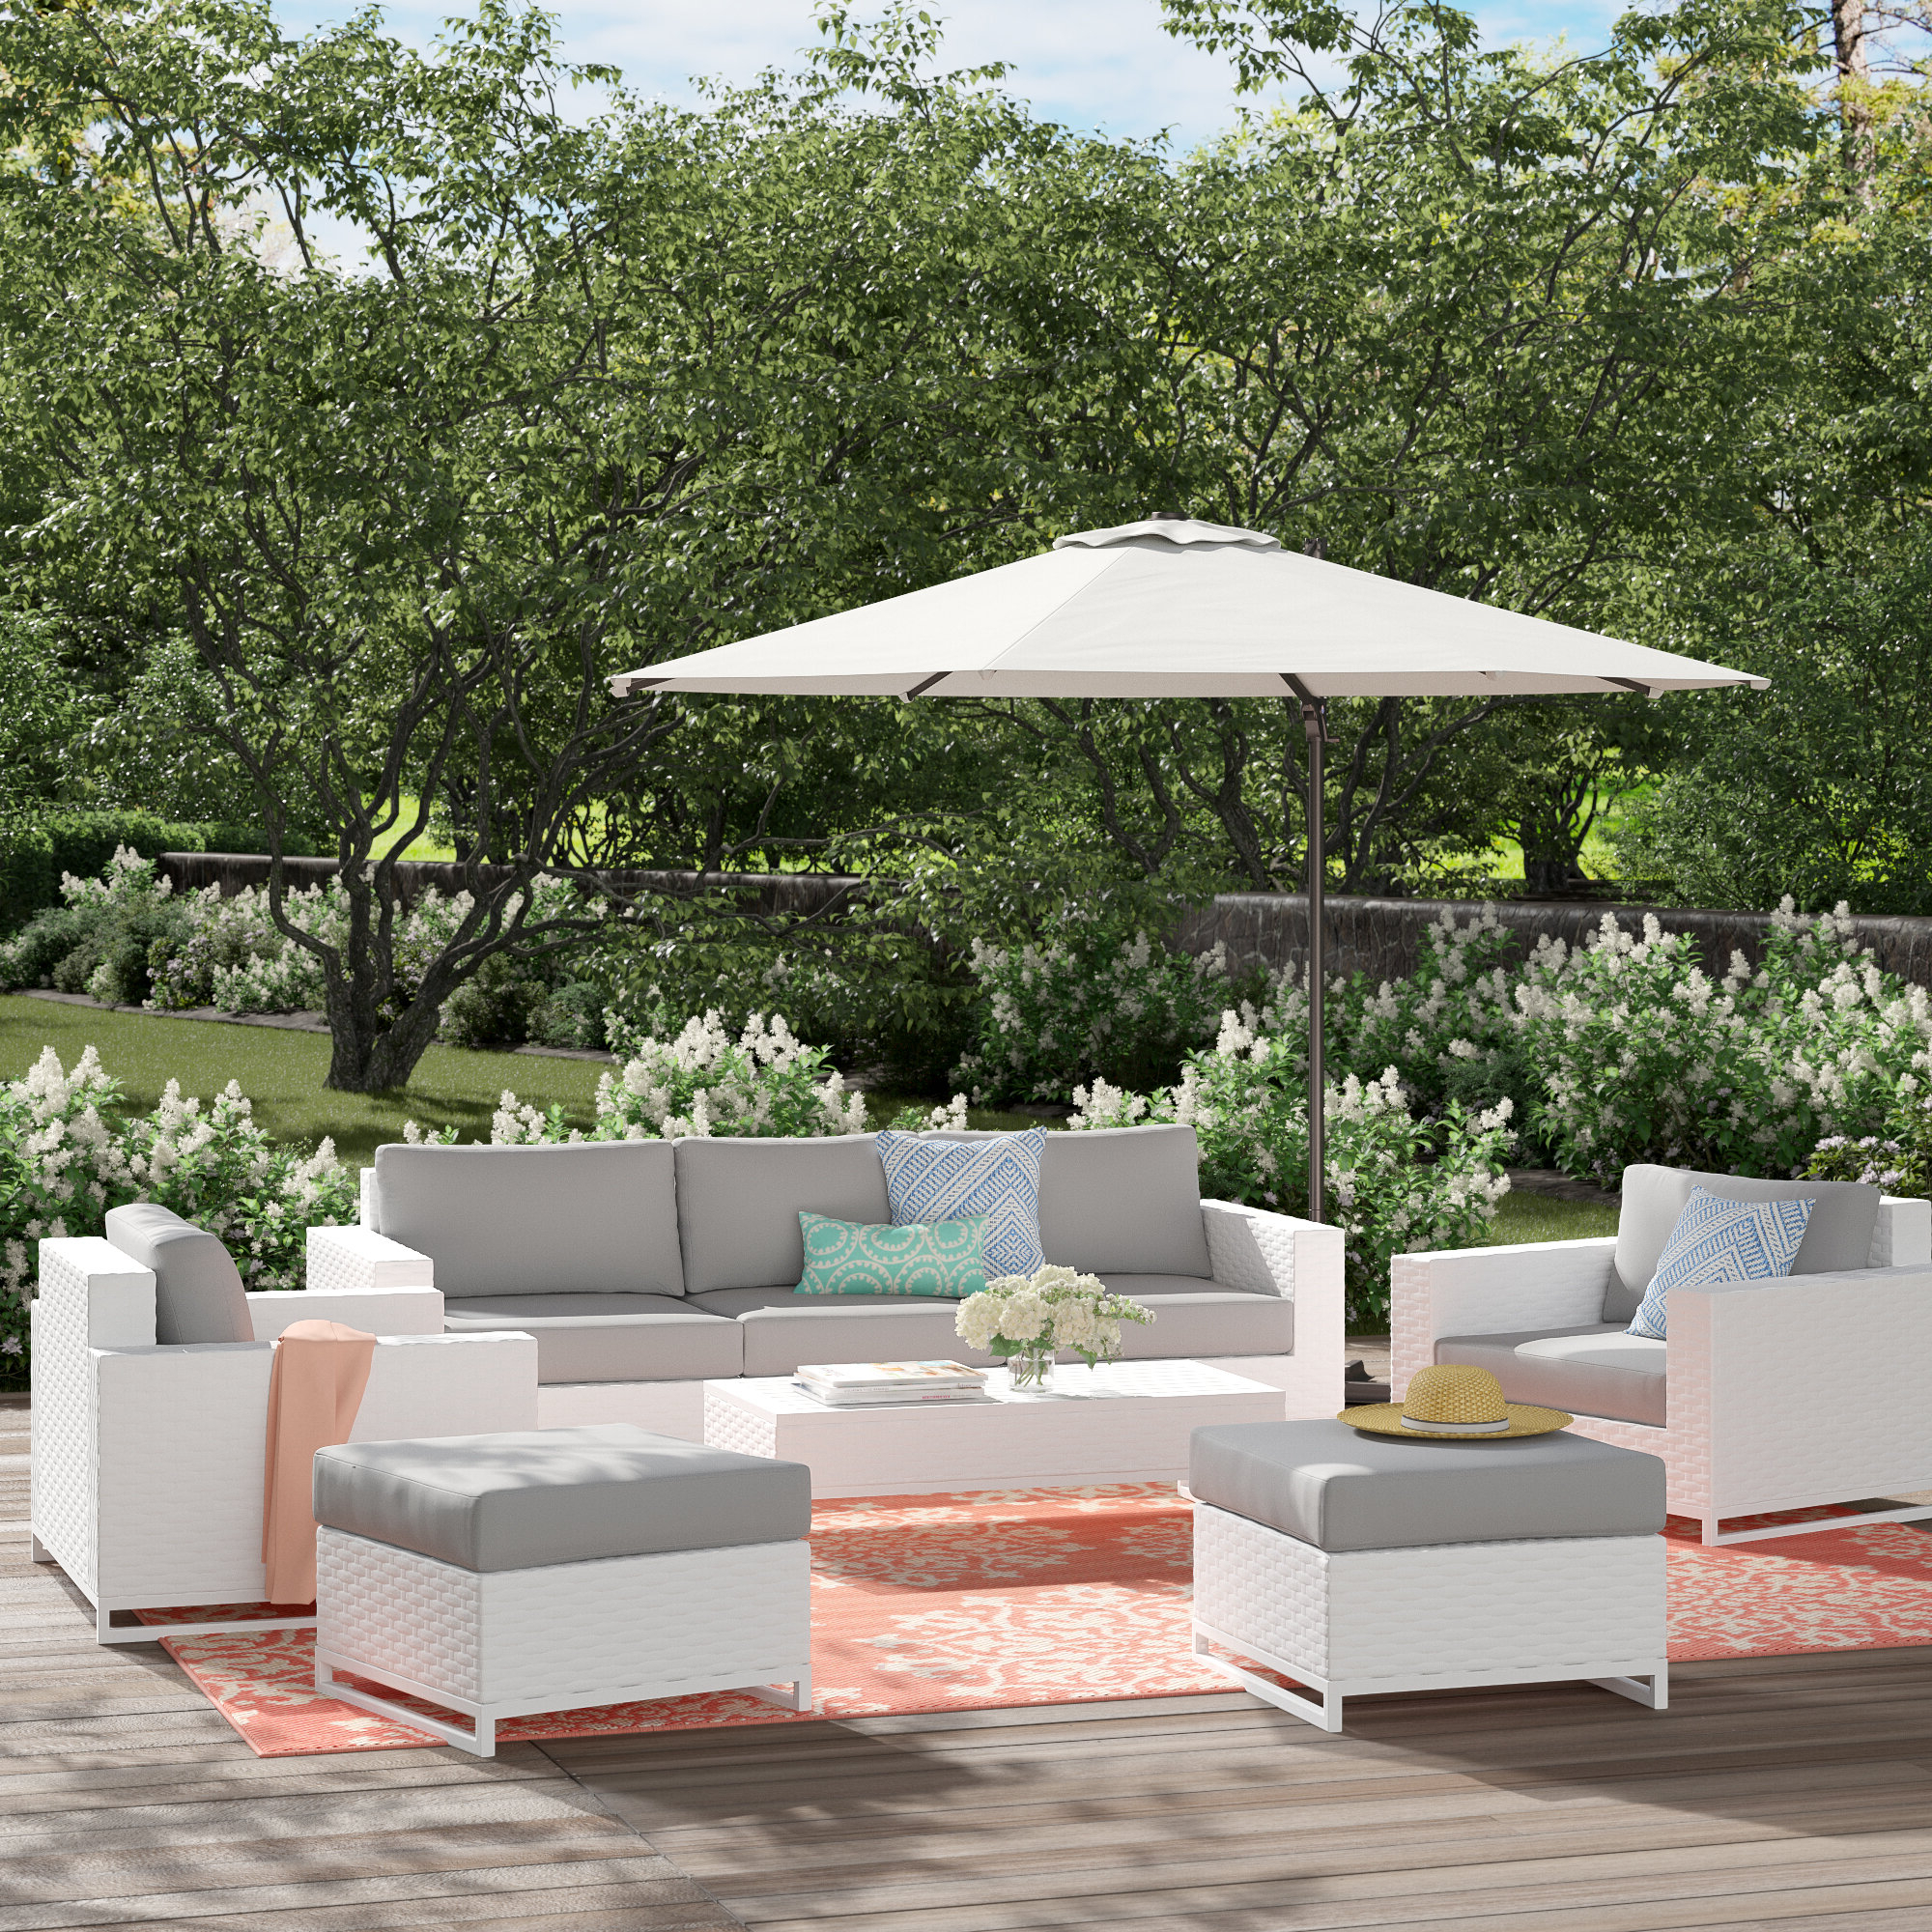 Menifee Patio Sofas With Cushions Within Popular Menifee 8 Piece Rattan Multiple Chairs Seating Group With Cushions (Gallery 9 of 25)